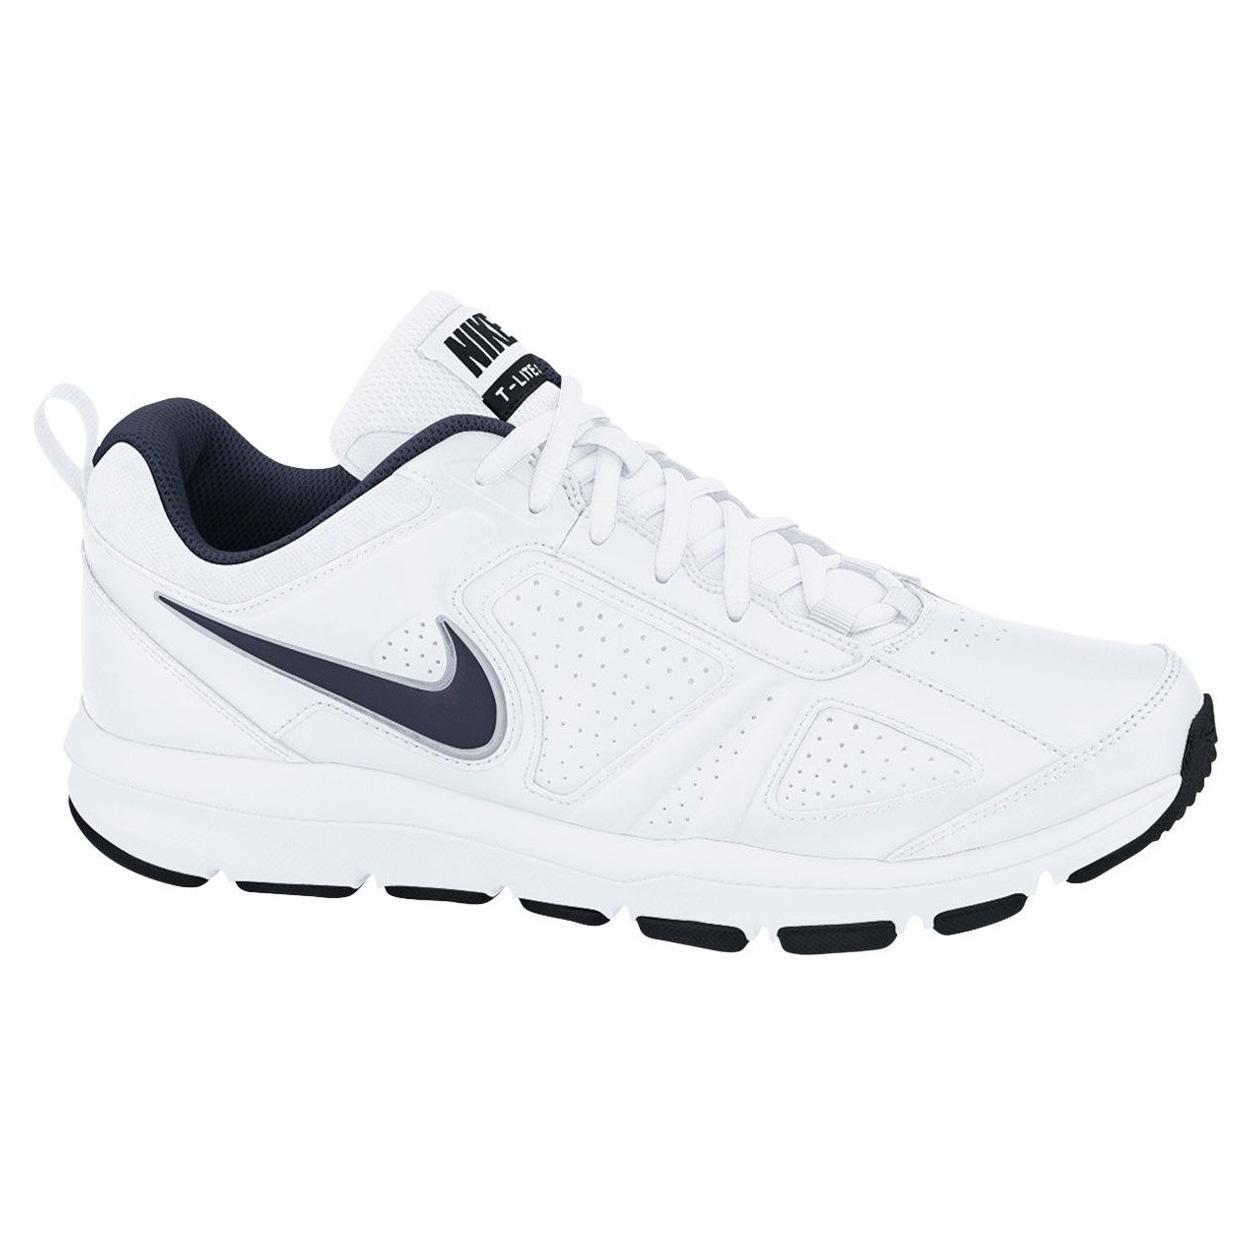 nike mens t lite xi training shoes white. Black Bedroom Furniture Sets. Home Design Ideas